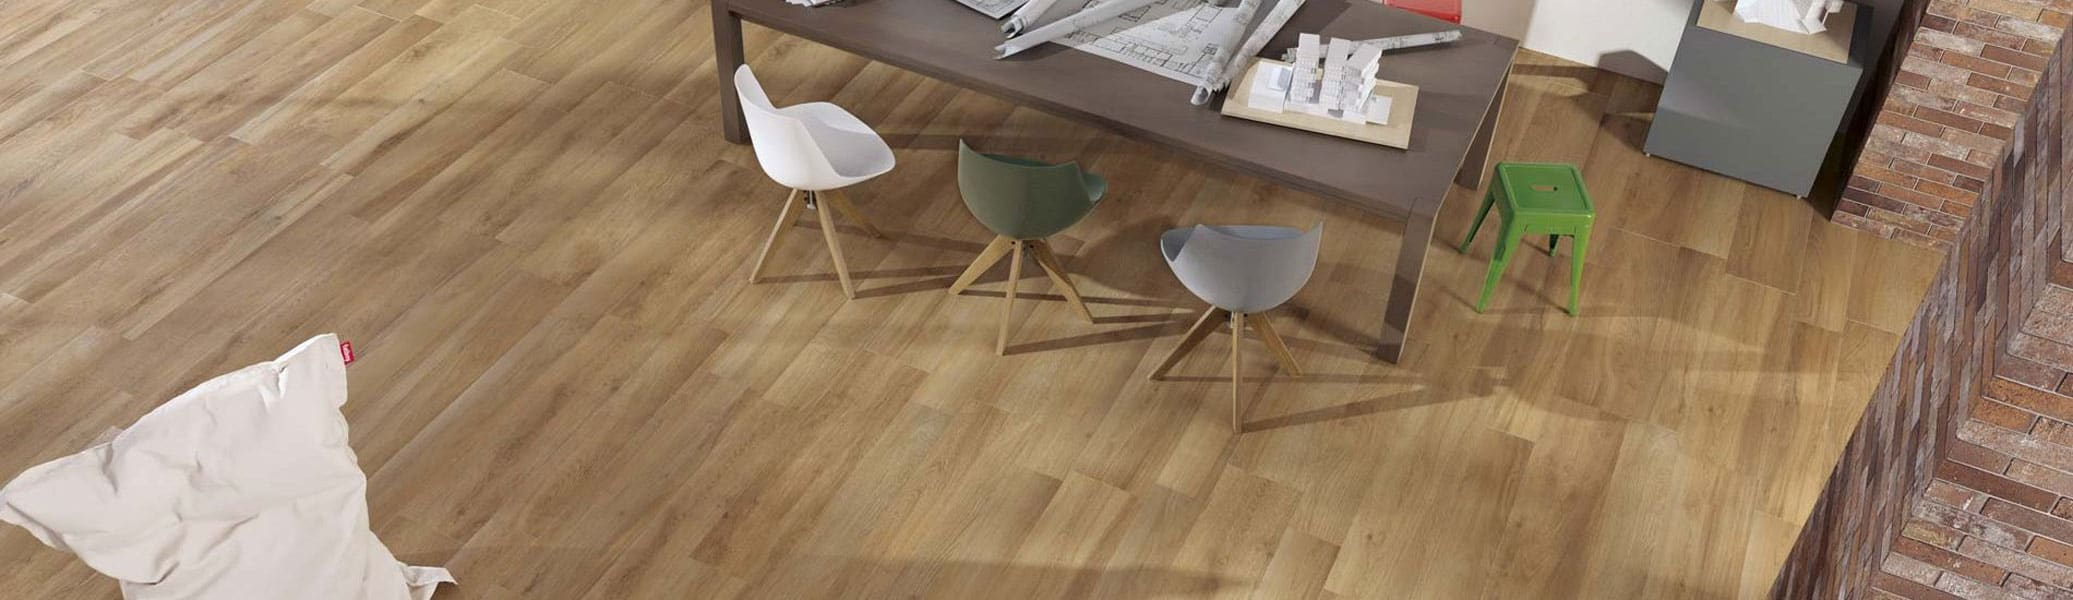 banner-ever-wood-look-floor-wall-tile-ceramic-rondine-1900x550